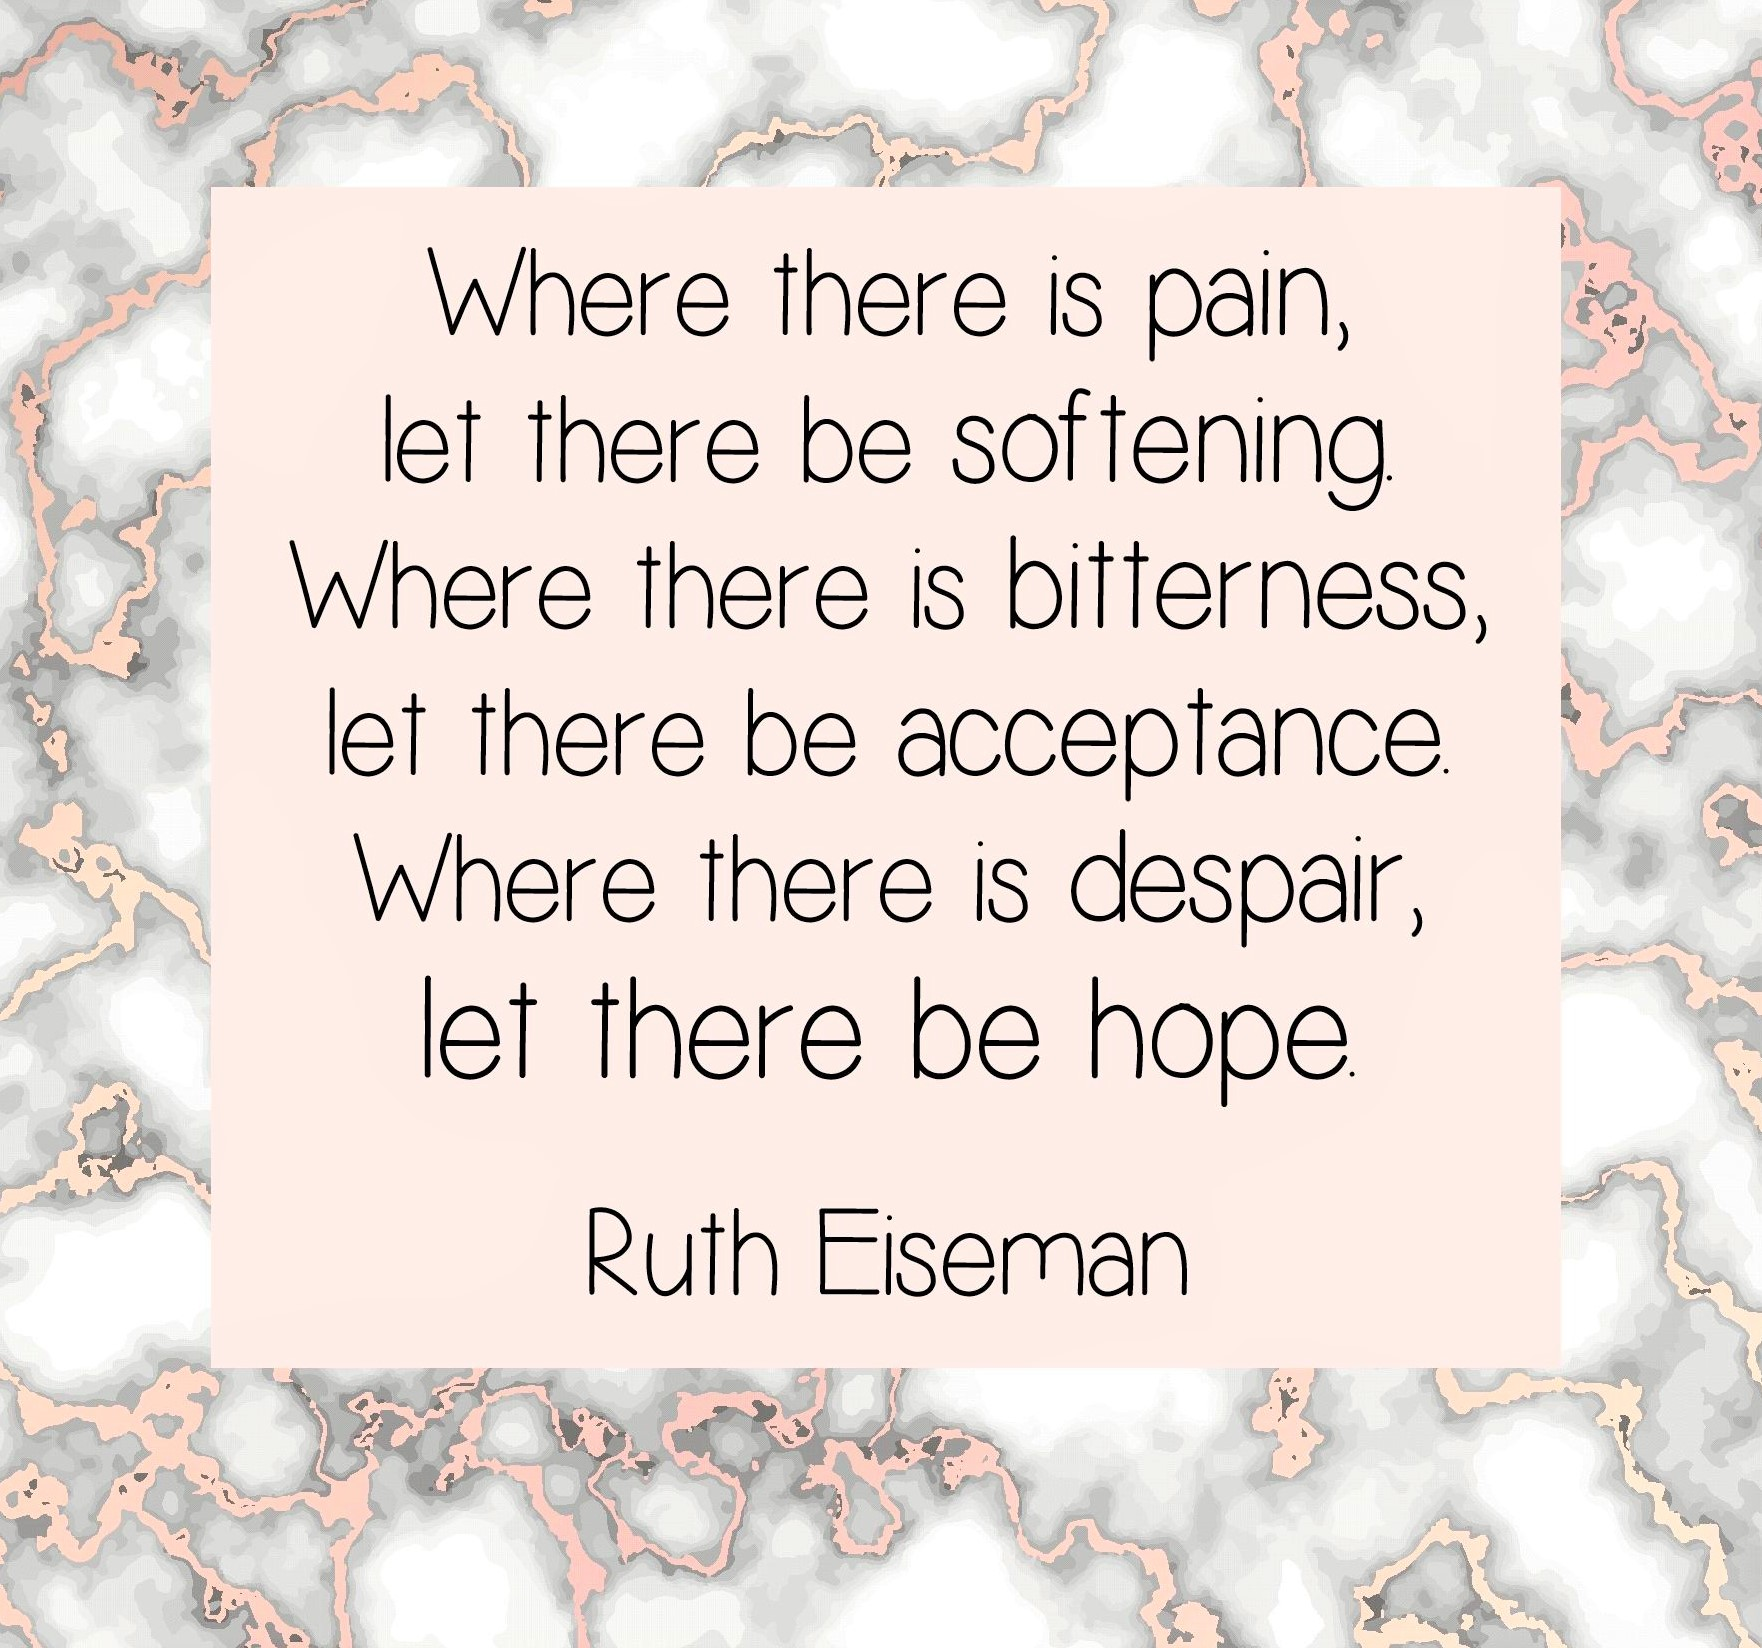 Where there is pain